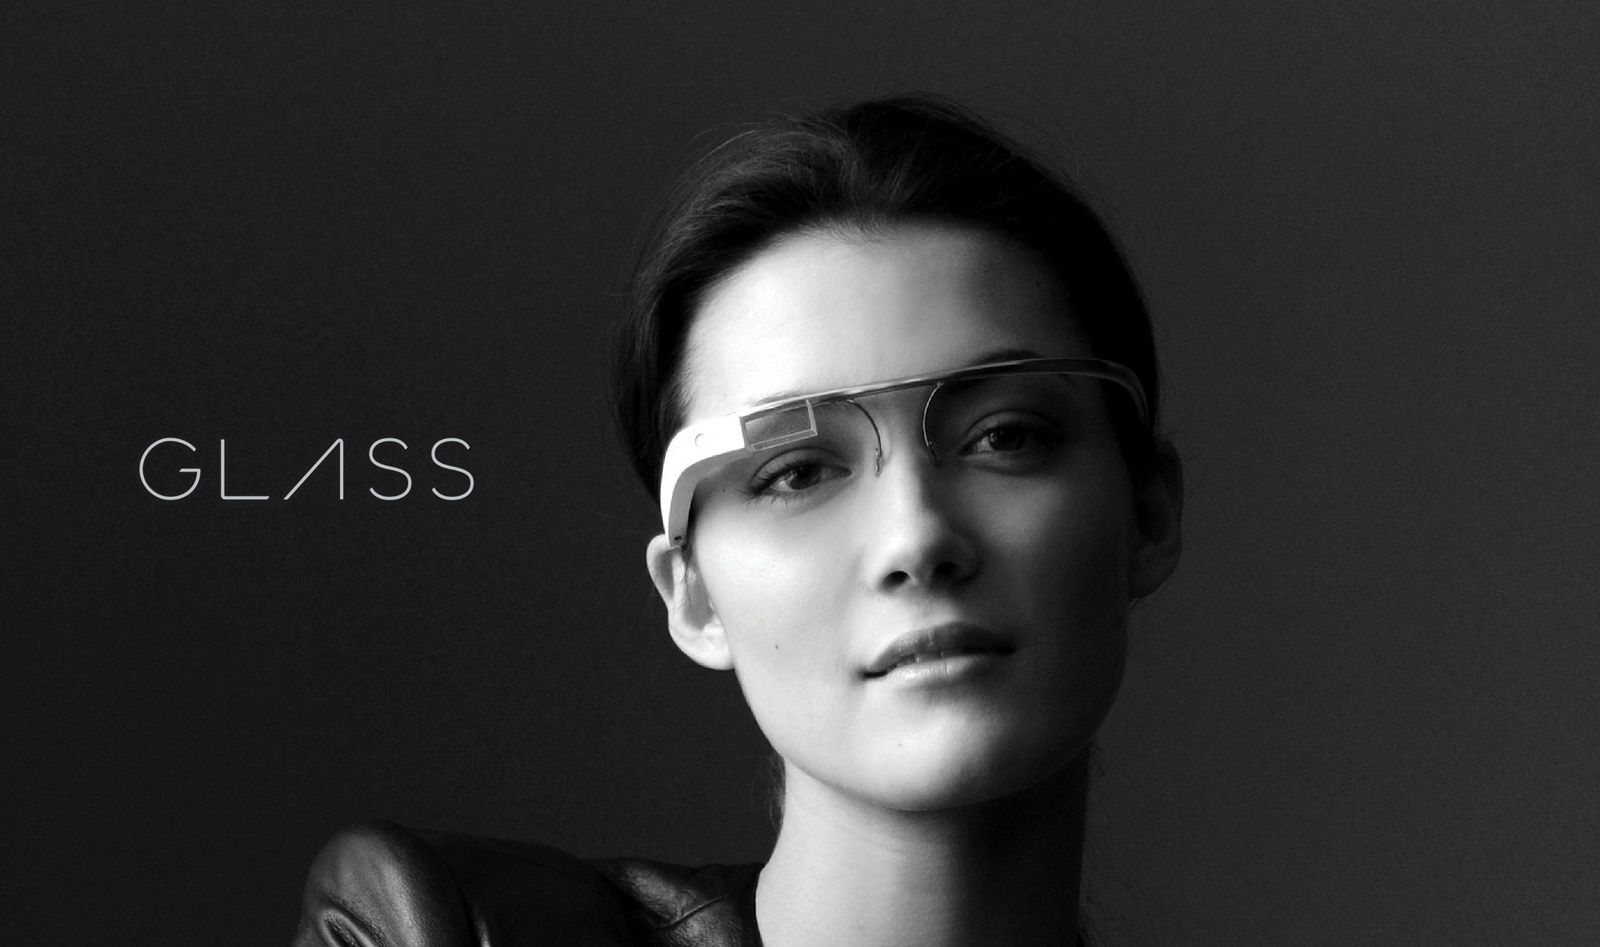 All you need to know about Google Glass4